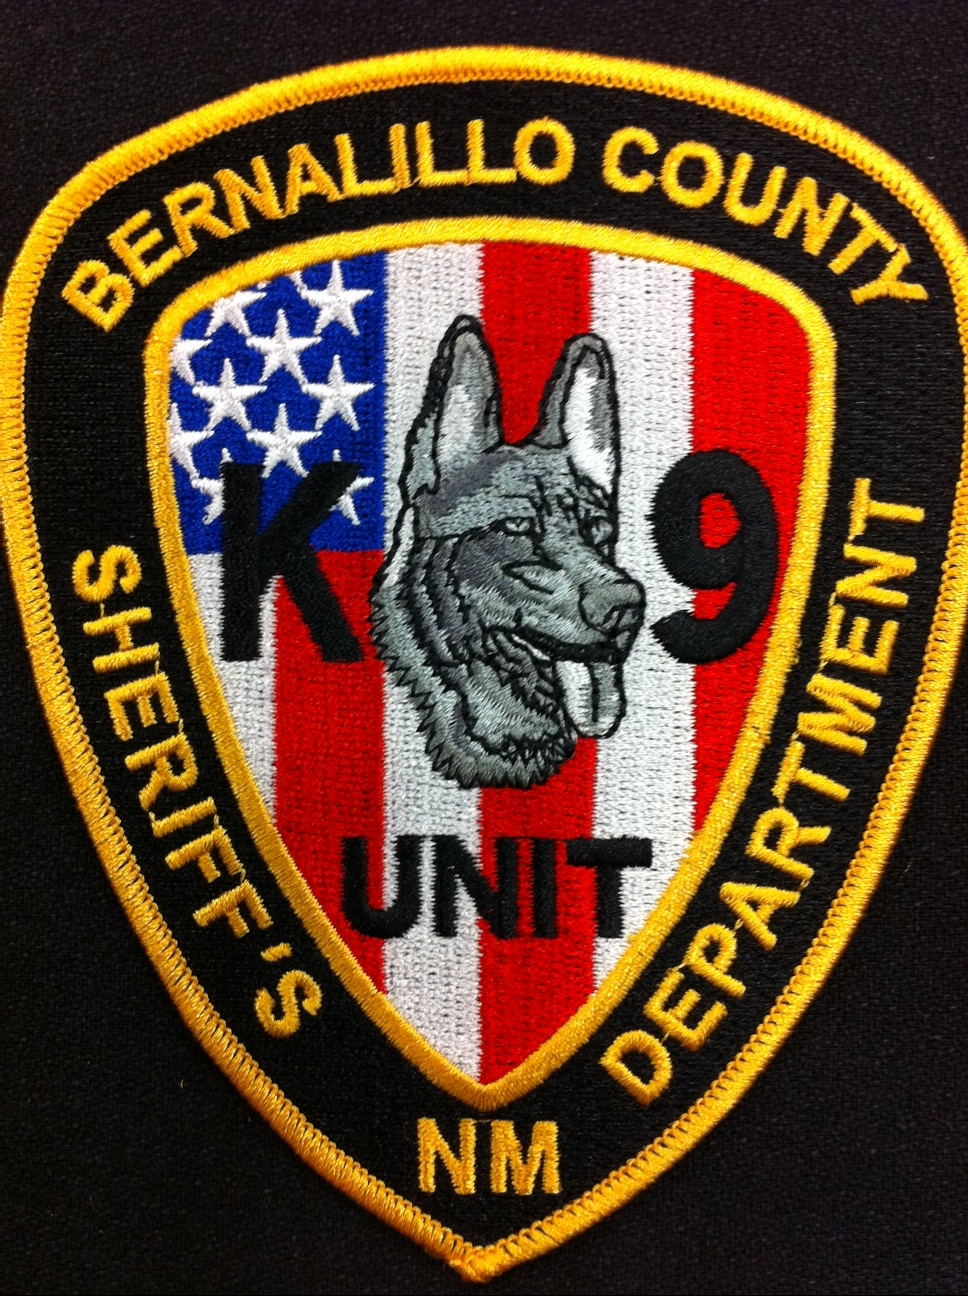 Bernalillo County New MexicoK-9 logo